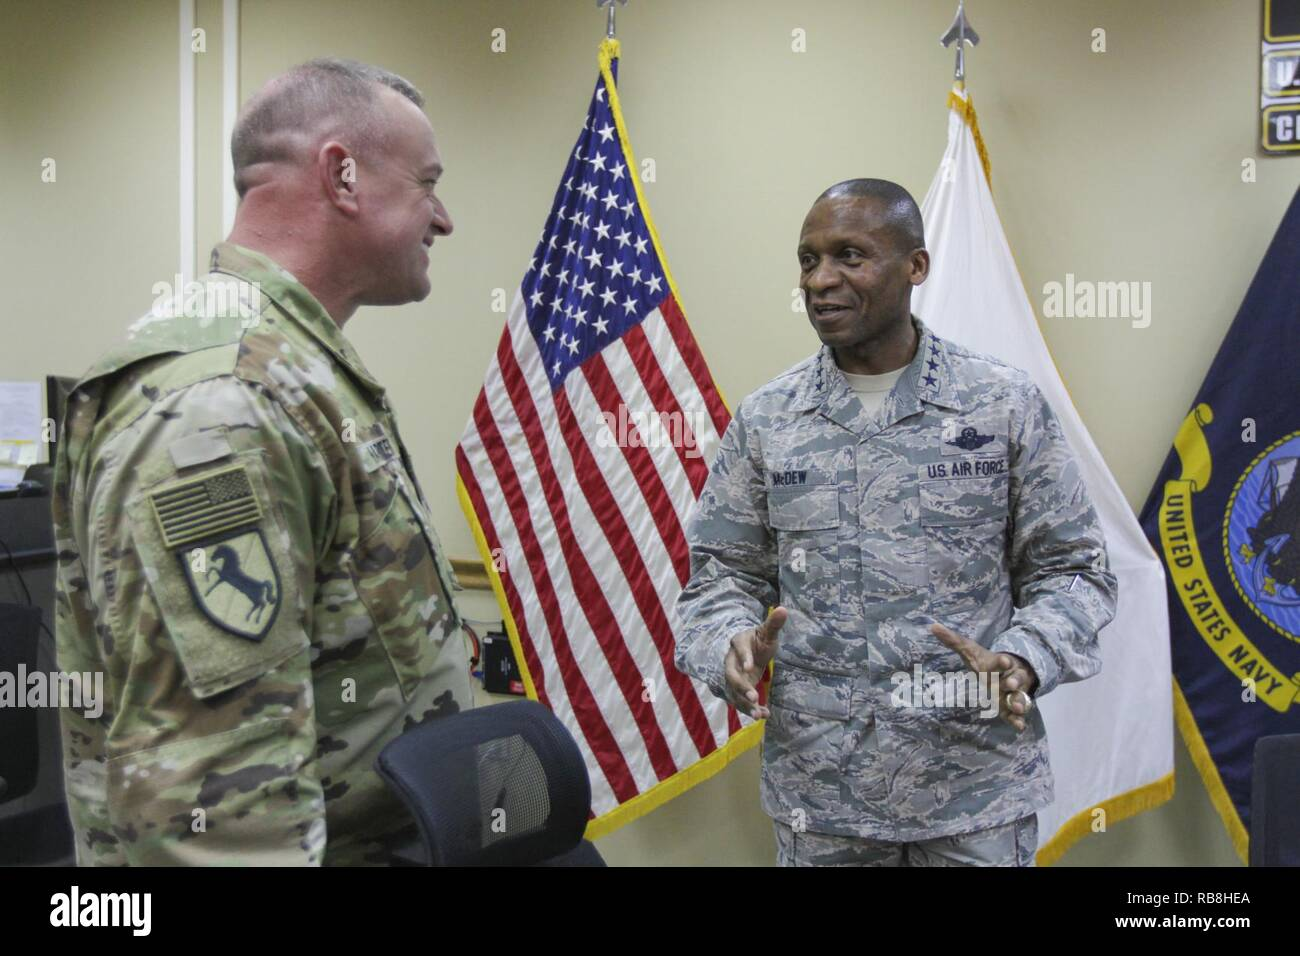 Gen. Darren W. McDew, commanding general of U.S. Transportation Command, (right) speaks with Brig. Gen. Robert D. Harter, commanding general of the 316th Sustainment Command (Expeditionary), an Army Reserve unit based out of Coraopolis, Pa., (left) about transportation and distribution of materials challenges in the U.S. Central Command (CENTCOM) area of responsibility at Camp Arifjan, Kuwait, Dec. 13, 2016. The realignment of joint forces has sped up the process of troops receiving vital supplies in the CENTCOM area of responsibility. - Stock Image